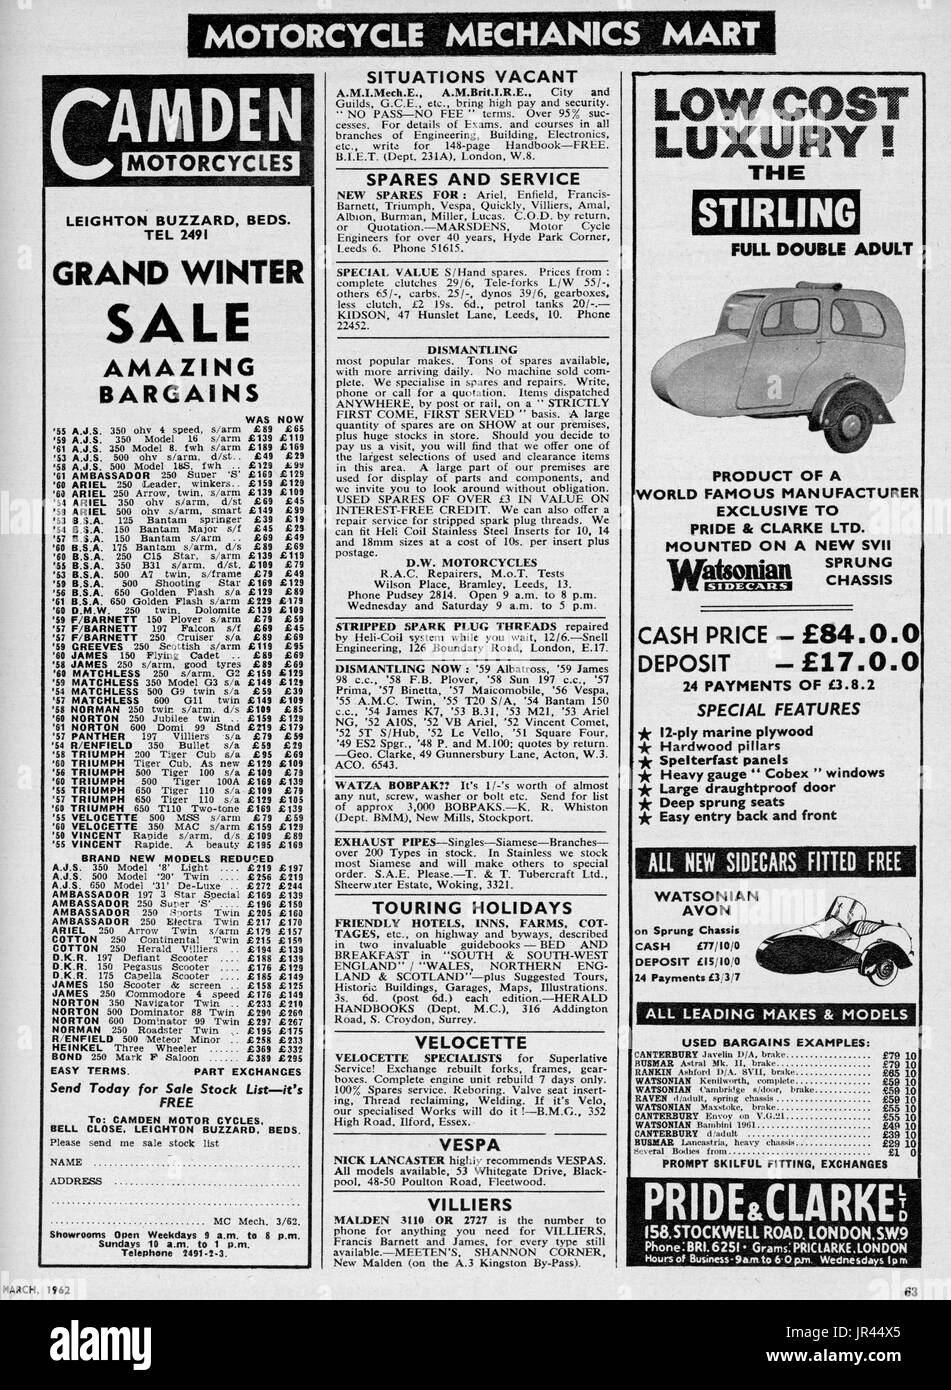 Motor Cycle Magazine Classified Adverts March 1962 - Stock Image